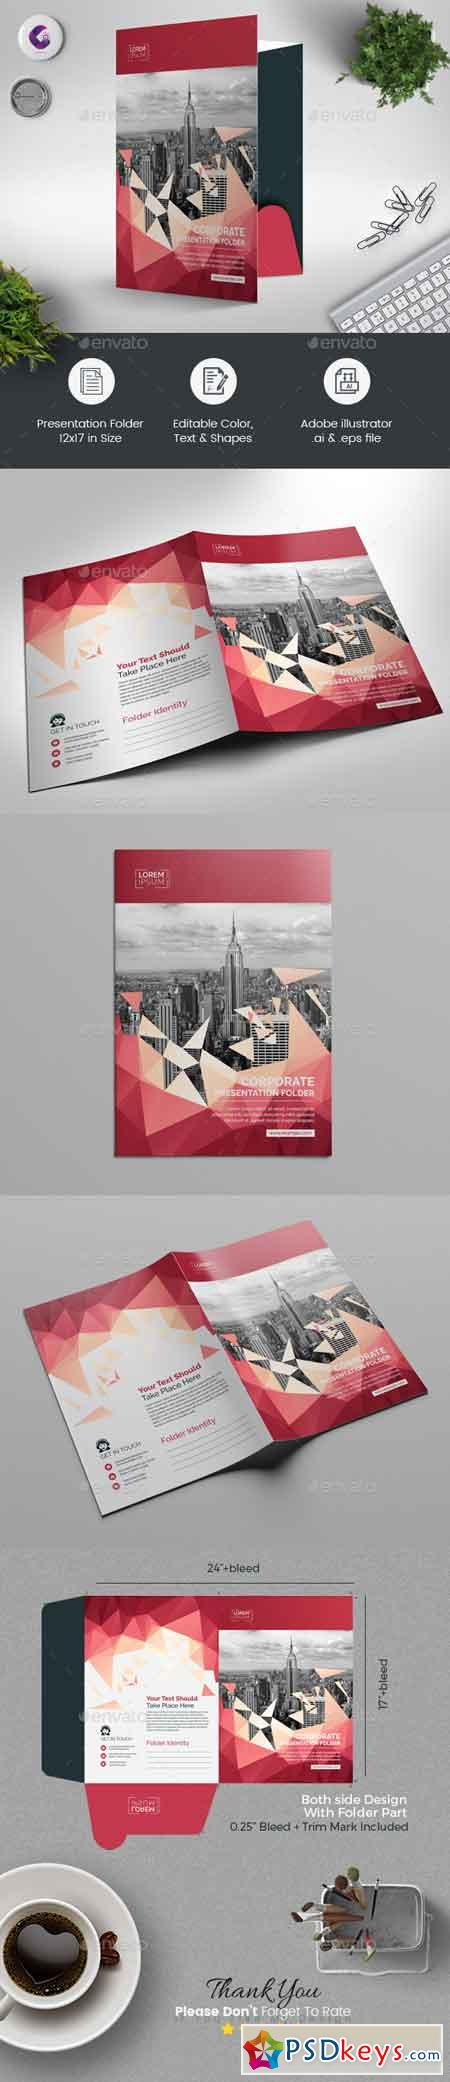 Abstract Presentation Folder 22647491